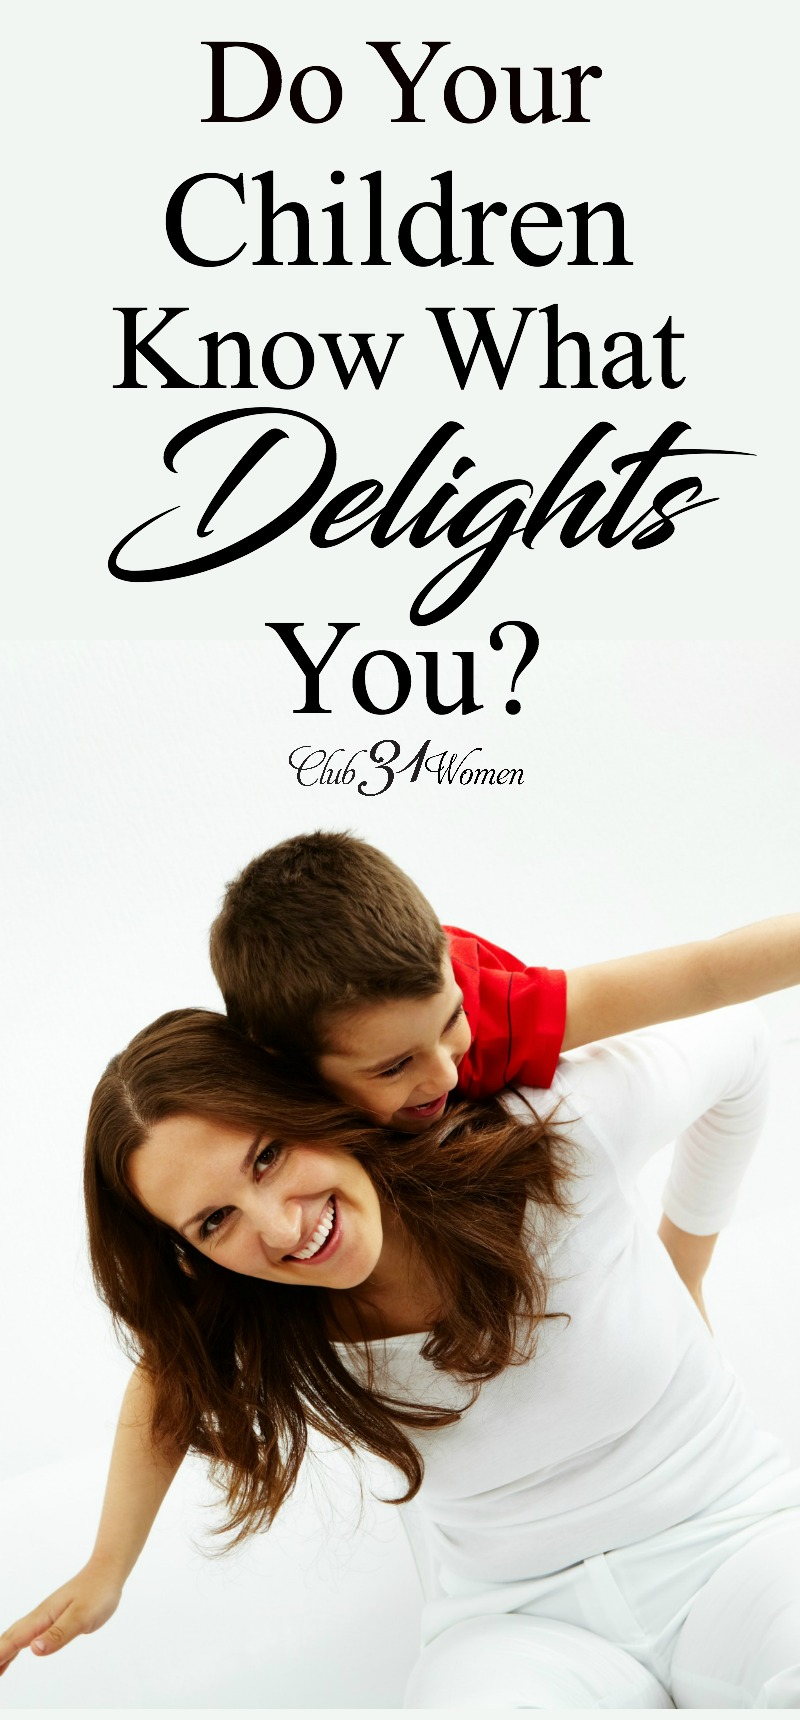 Maybe what seems obvious to you isn't obvious to your children, or others around you? How can you show them what delights you most? via @Club31Women